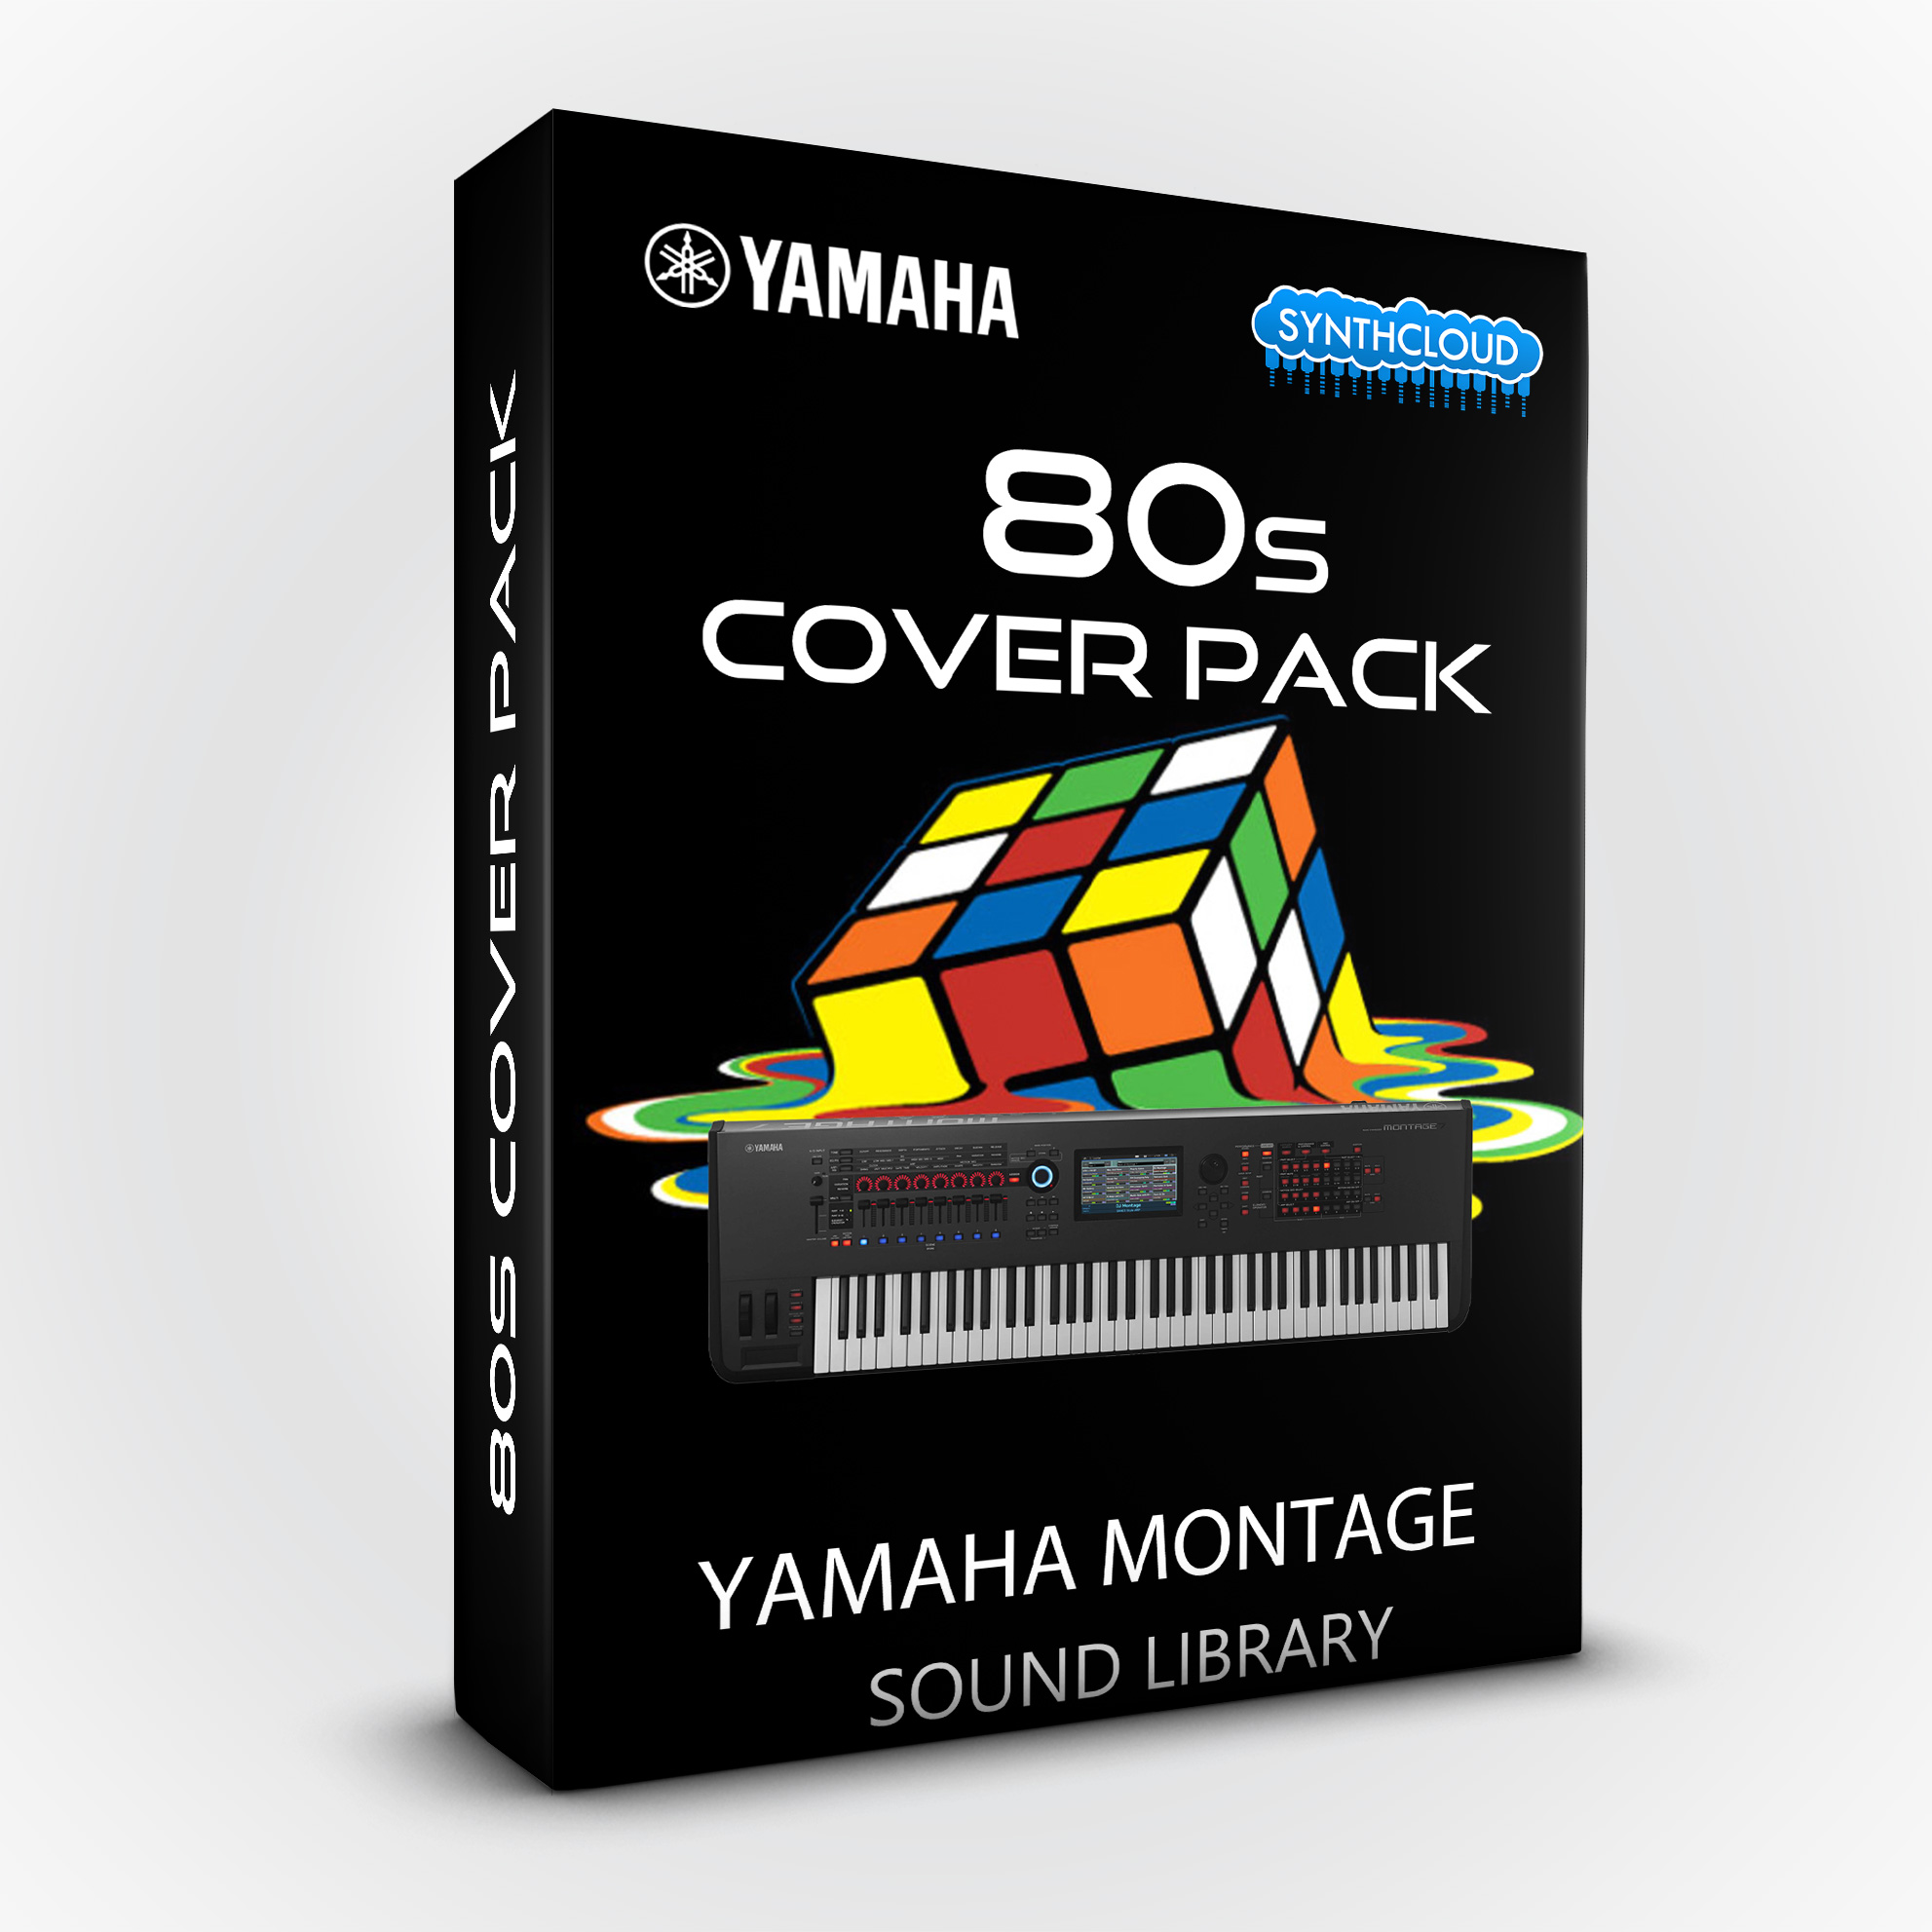 SCL129 - 80s Cover Pack - Yamaha MONTAGE